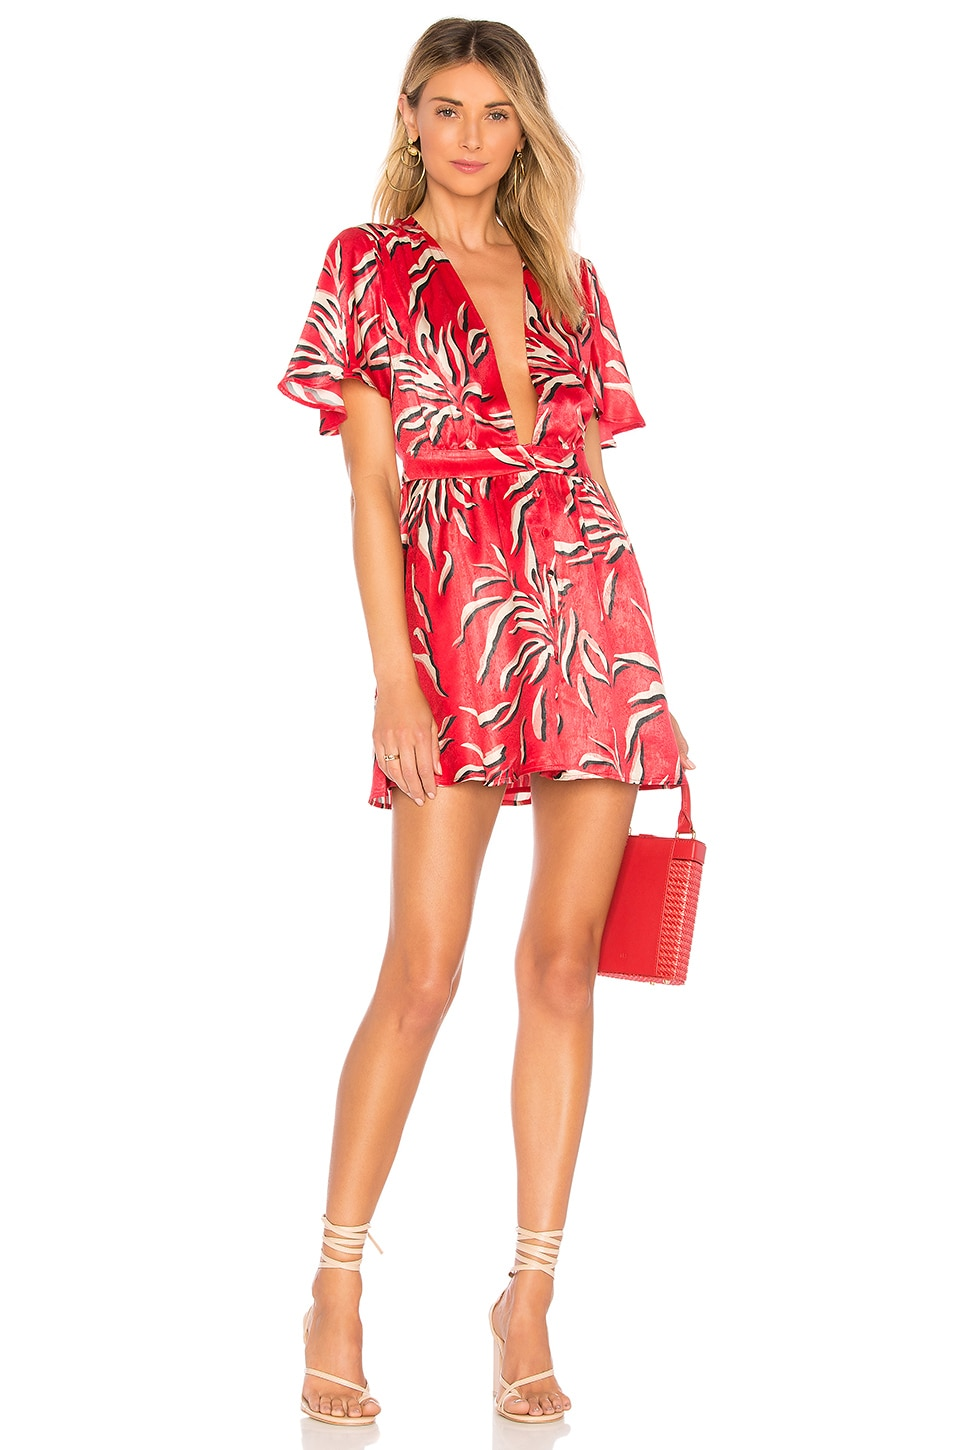 House of Harlow 1960 x REVOLVE Dawn Dress in Fond Print